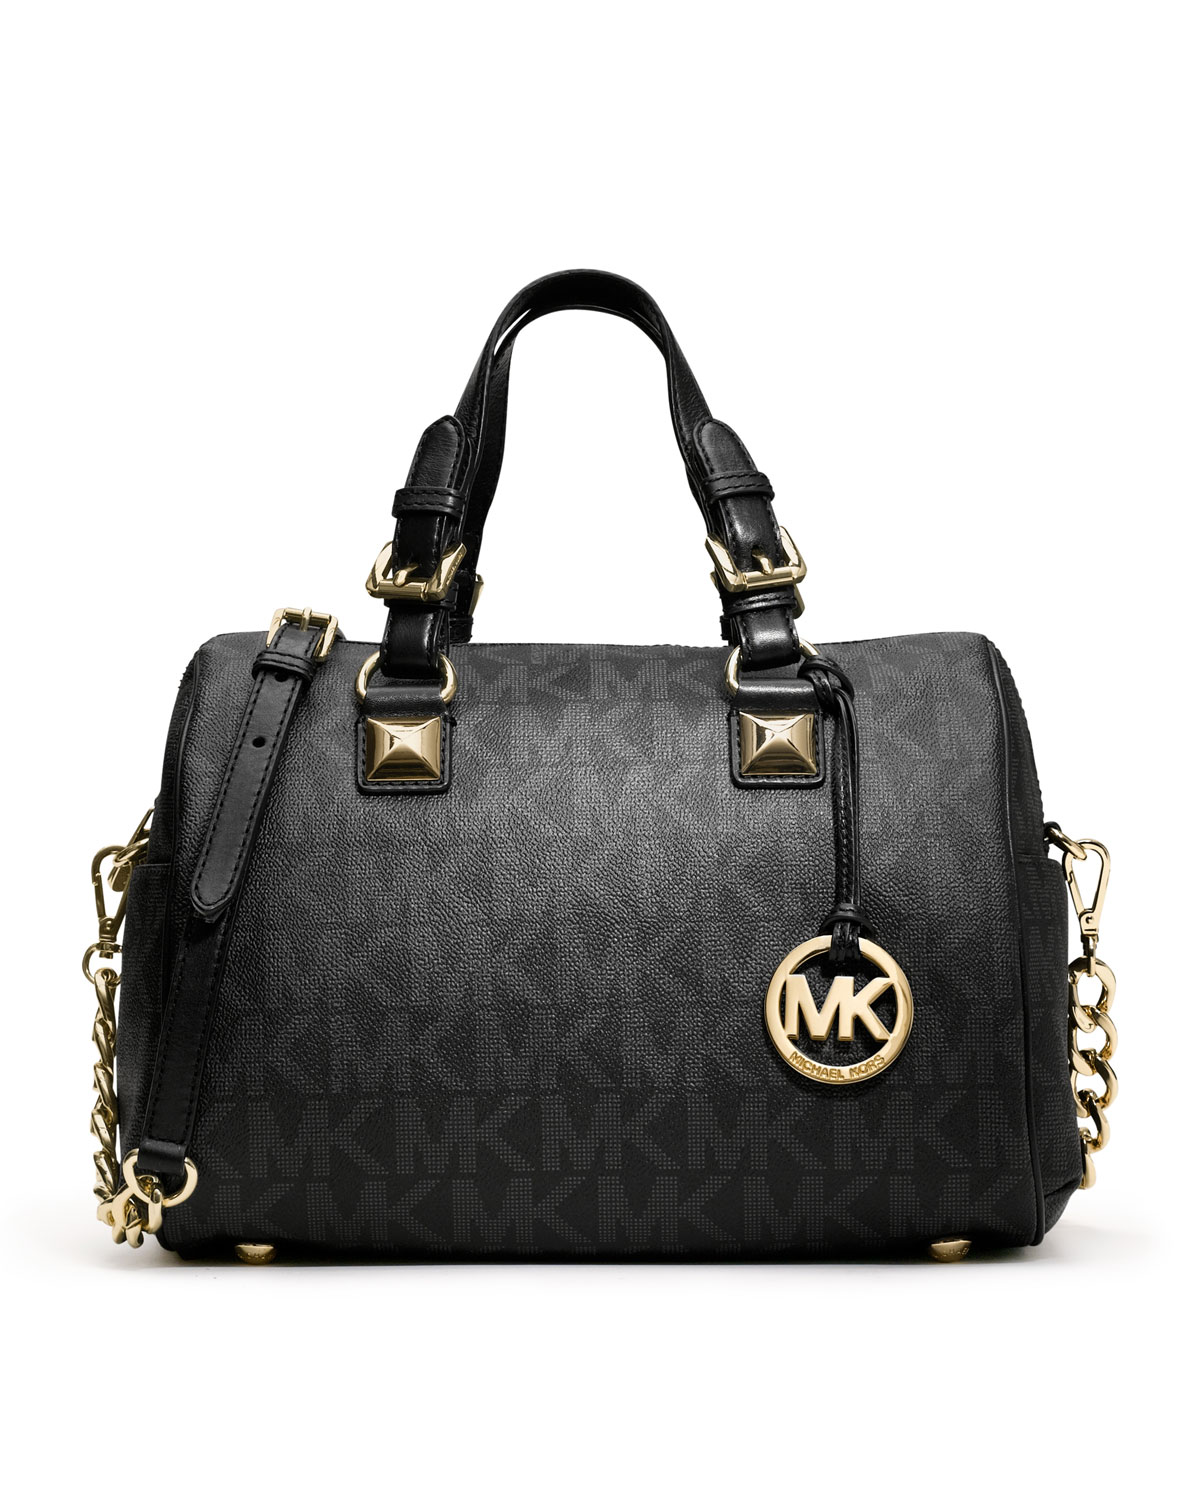 graue michael kors tasche file michael kors selma lg tz satchel handtasche 25 best ideas about. Black Bedroom Furniture Sets. Home Design Ideas